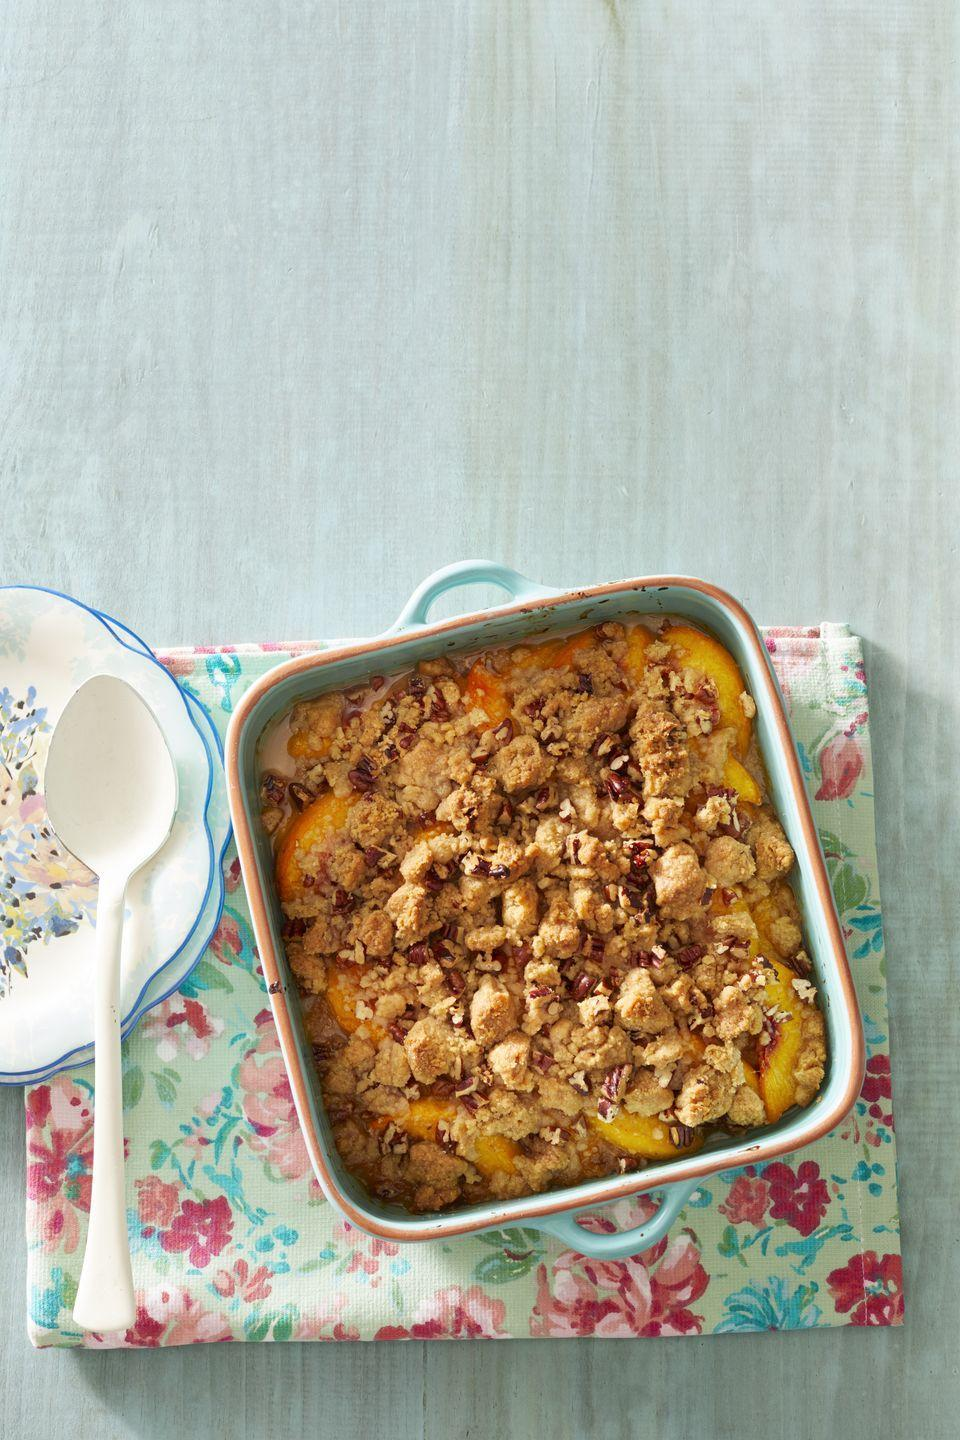 """<p>Peaches and pecans are a match made in heaven, and the proof is in this easy crisp. Don't forget the ice cream!</p><p><strong><a href=""""https://www.thepioneerwoman.com/food-cooking/recipes/a32097453/peach-pecan-crisp-recipe/#"""" rel=""""nofollow noopener"""" target=""""_blank"""" data-ylk=""""slk:Get Ree's recipe."""" class=""""link rapid-noclick-resp"""">Get Ree's recipe.</a><br></strong></p><p><a class=""""link rapid-noclick-resp"""" href=""""https://go.redirectingat.com?id=74968X1596630&url=https%3A%2F%2Fwww.walmart.com%2Fsearch%2F%3Fquery%3Dpioneer%2Bwoman%2Bbaking%2Bpan&sref=https%3A%2F%2Fwww.thepioneerwoman.com%2Ffood-cooking%2Frecipes%2Fg36382592%2Fpeach-desserts%2F"""" rel=""""nofollow noopener"""" target=""""_blank"""" data-ylk=""""slk:SHOP BAKING PANS"""">SHOP BAKING PANS</a></p>"""